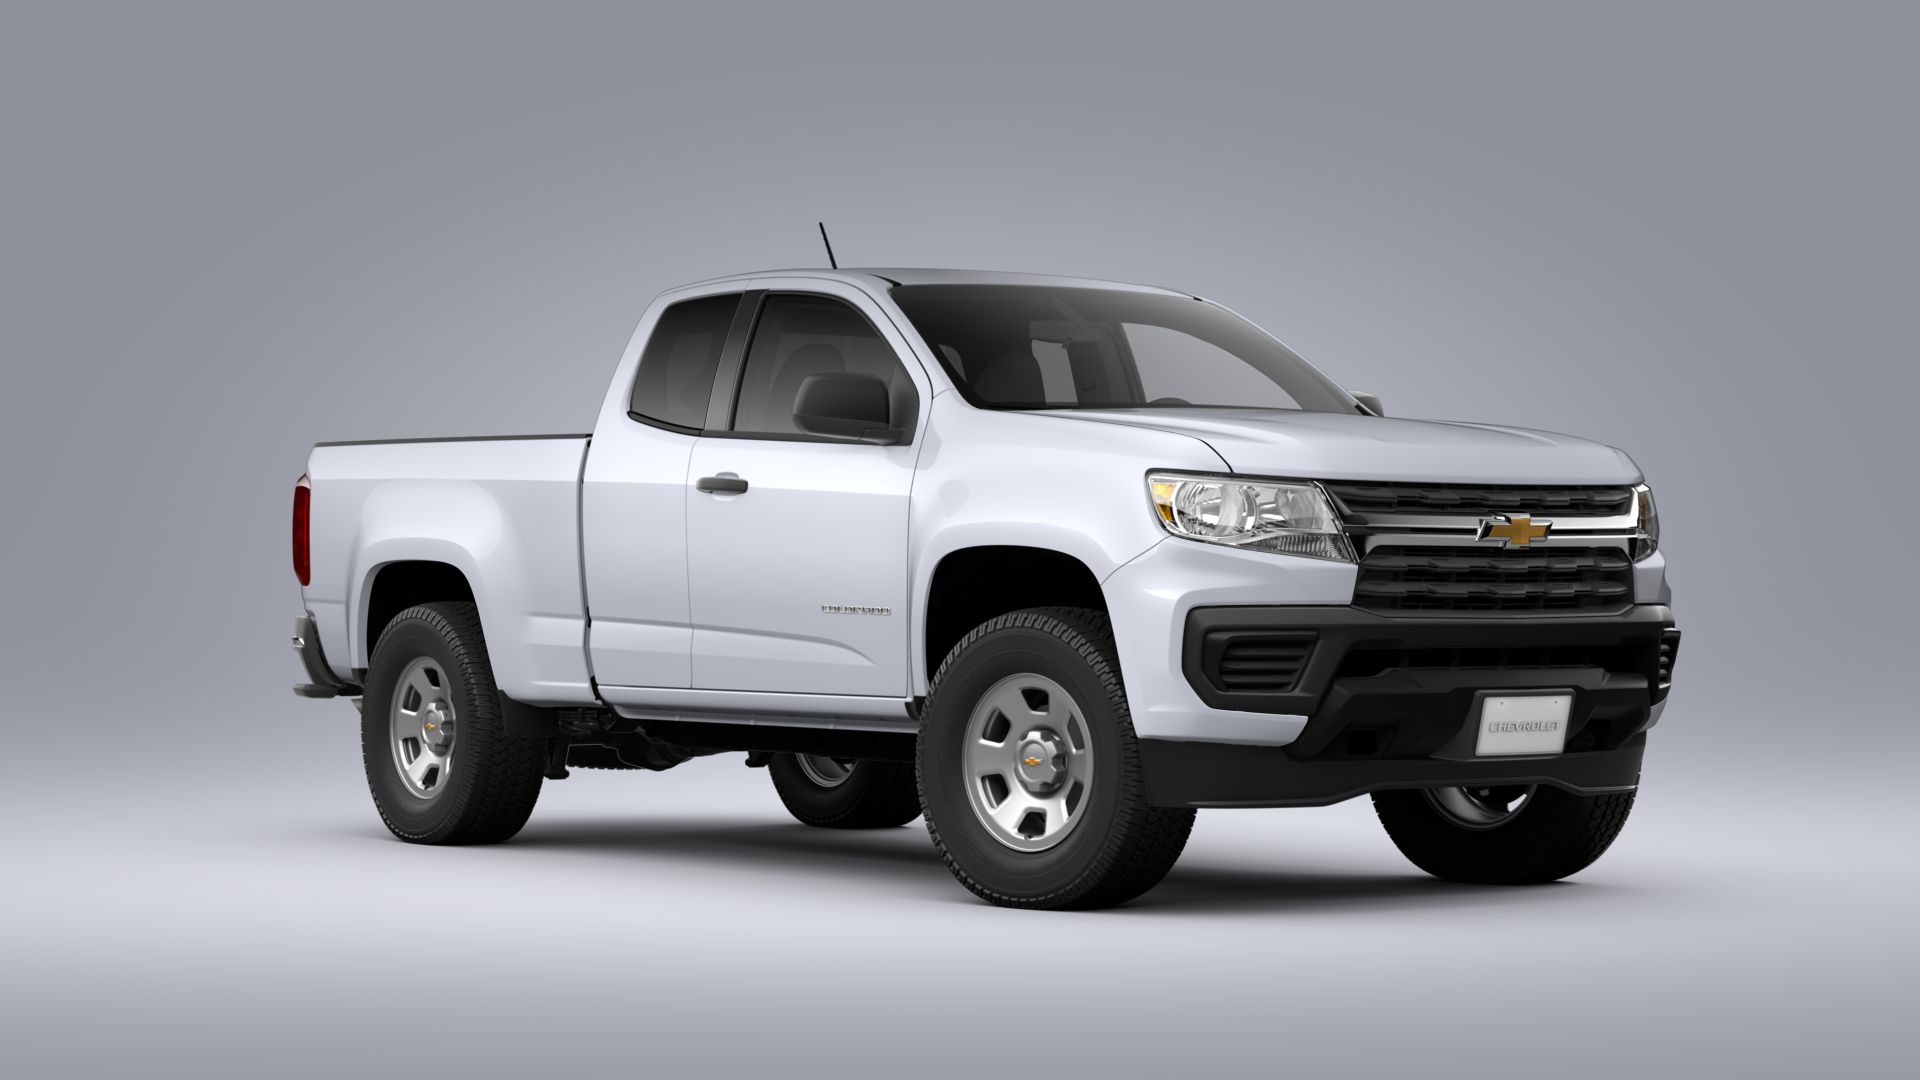 2021 Chevrolet Colorado WT REAR WHEEL DRIVE Extended Cab